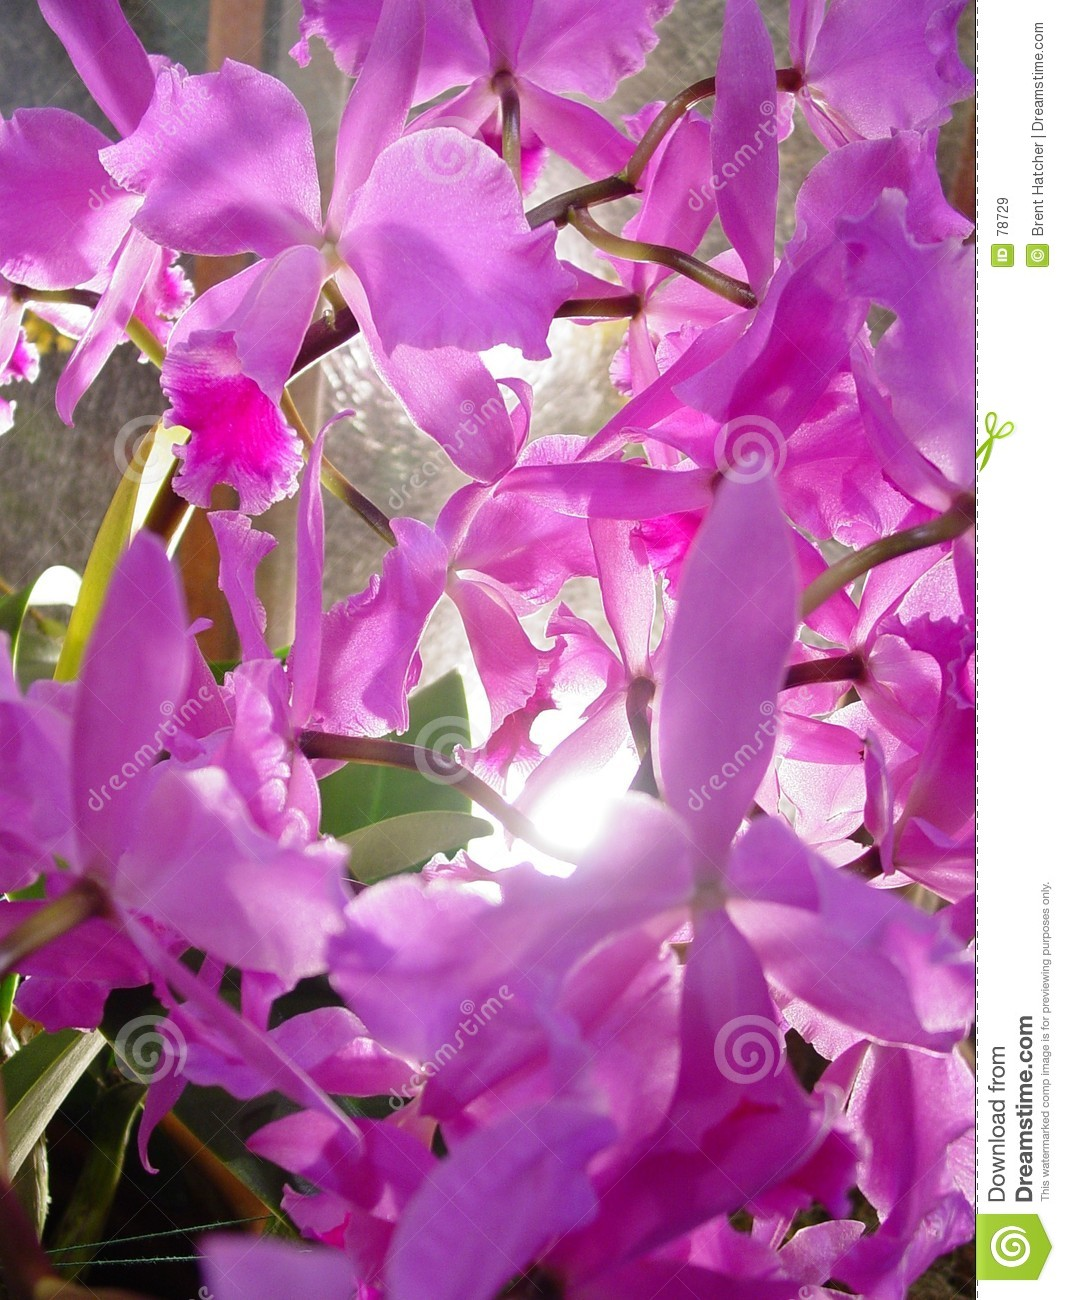 Purpurowe orchidee